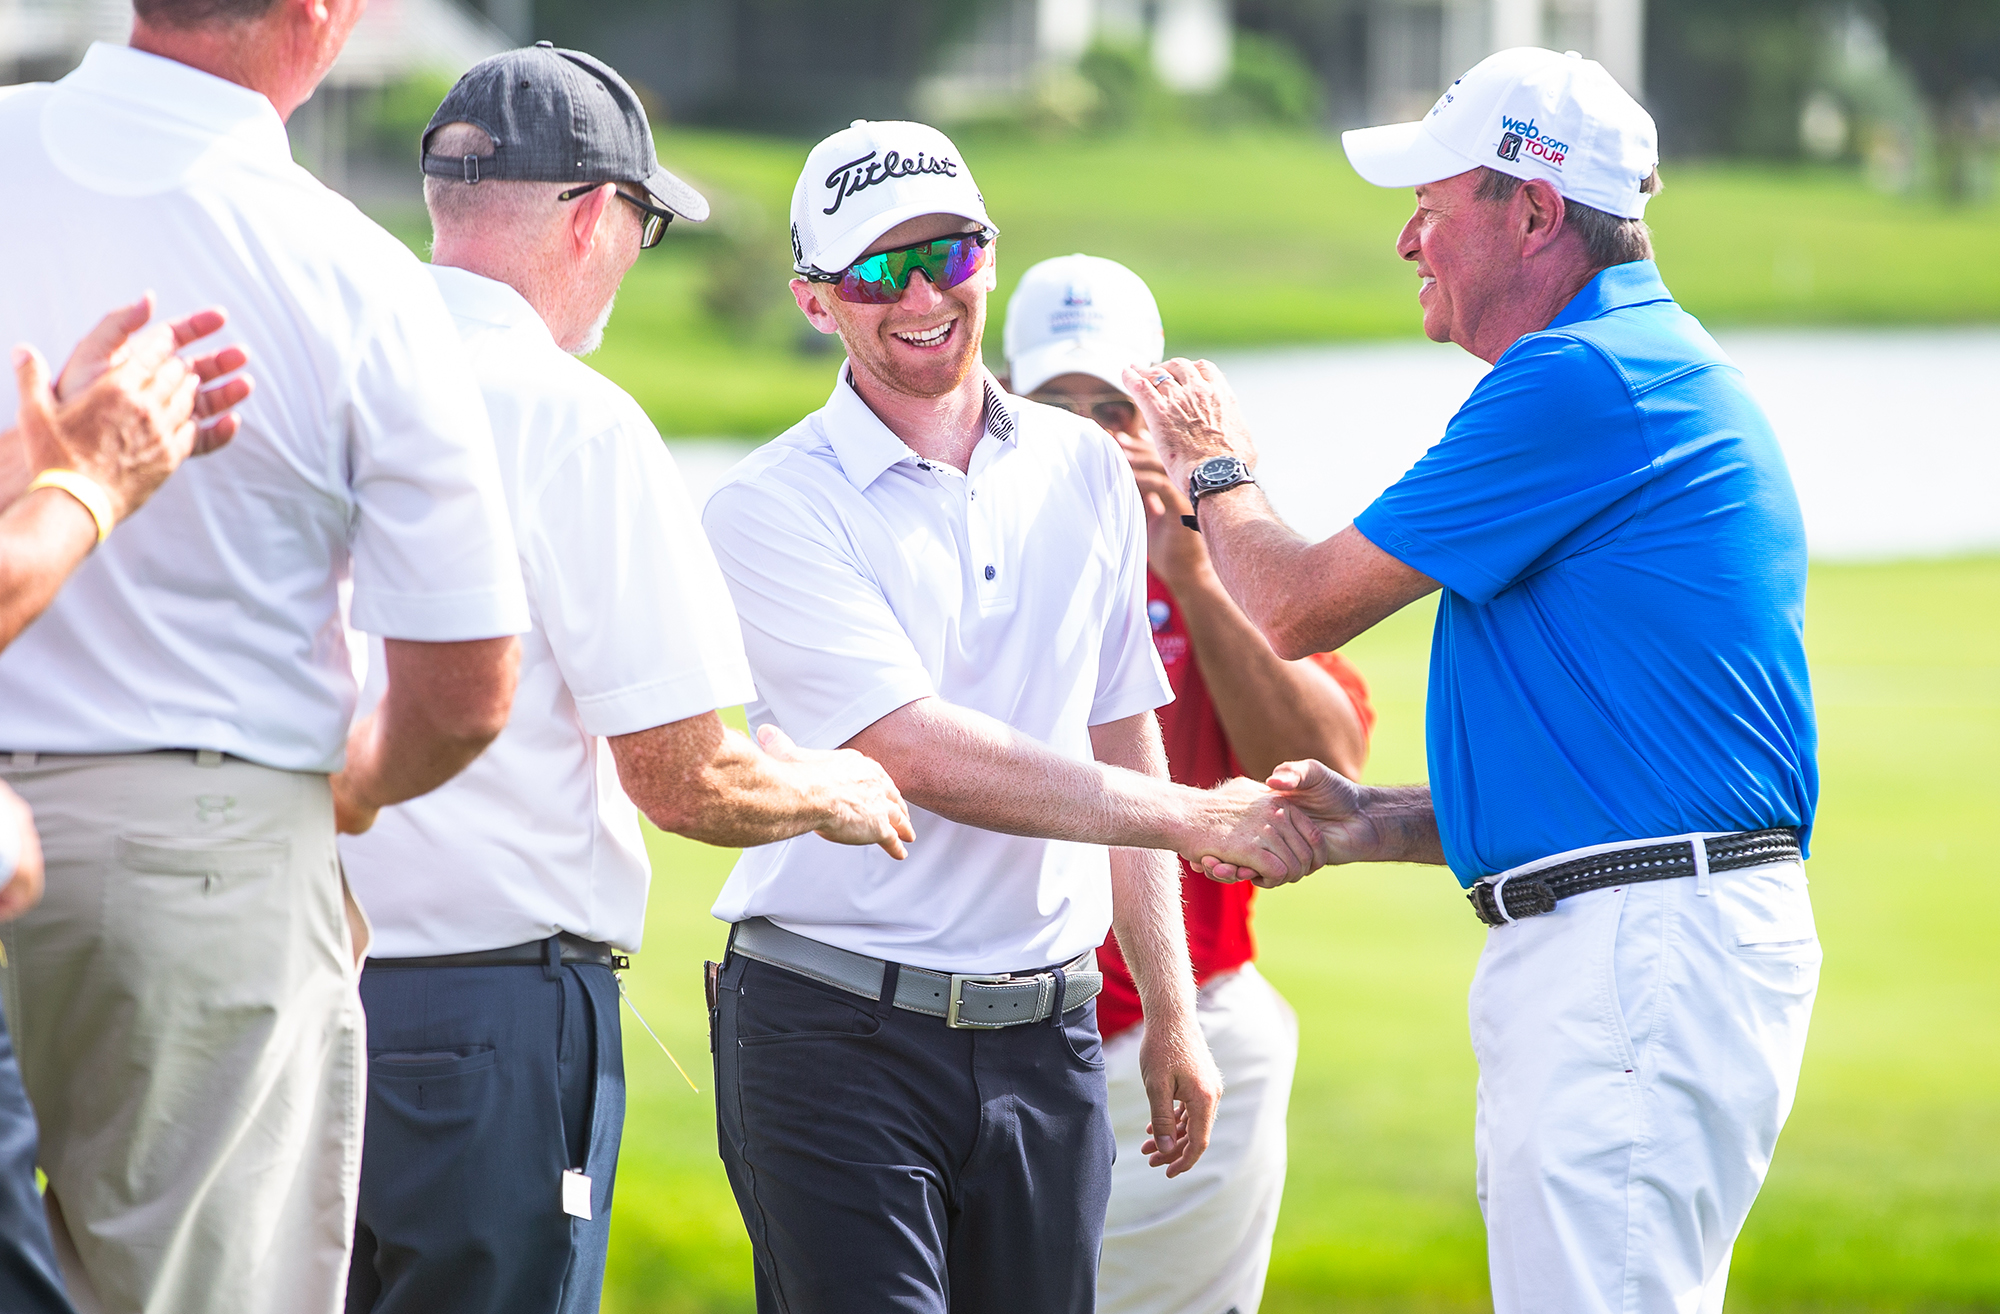 Anders Albertson is congratulated as he walks up to the 18th green to receive his trophy after winning the Lincoln Land Championship presented by LRS at Panther Creek Country Club, Sunday, July 1, 2018, in Springfield, Ill. [Justin L. Fowler/The State Journal-Register]